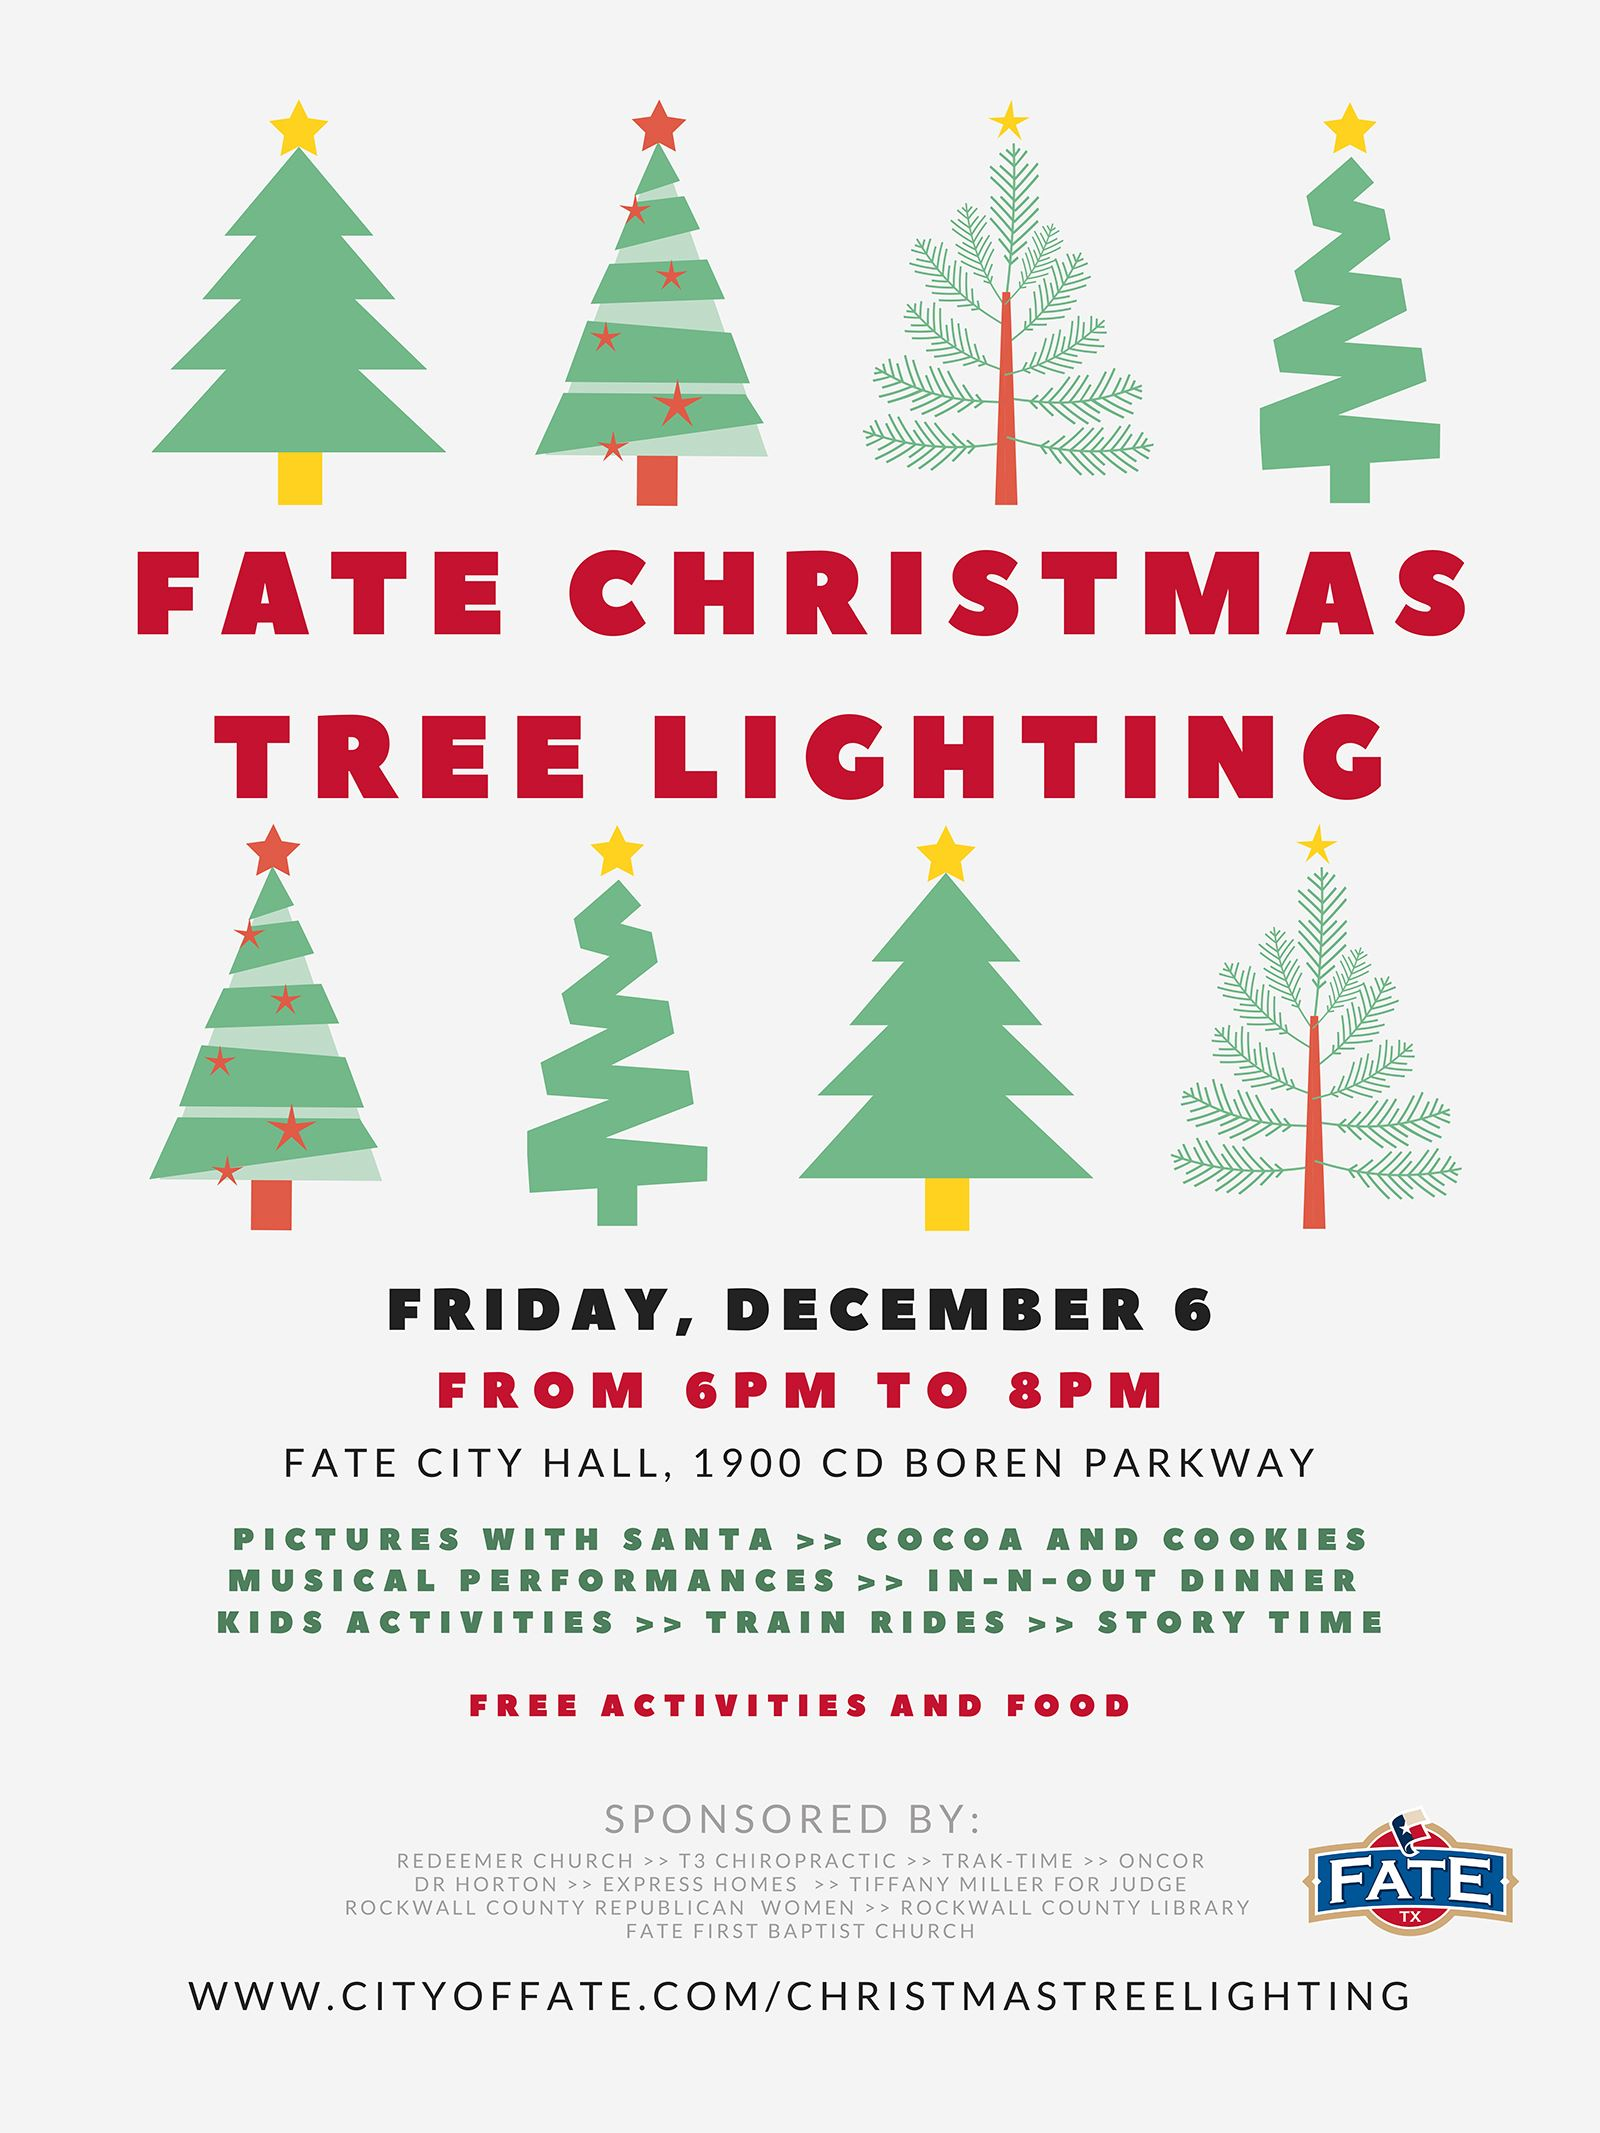 Fate Christmas Tree Lighting Poster - Words with Green trees